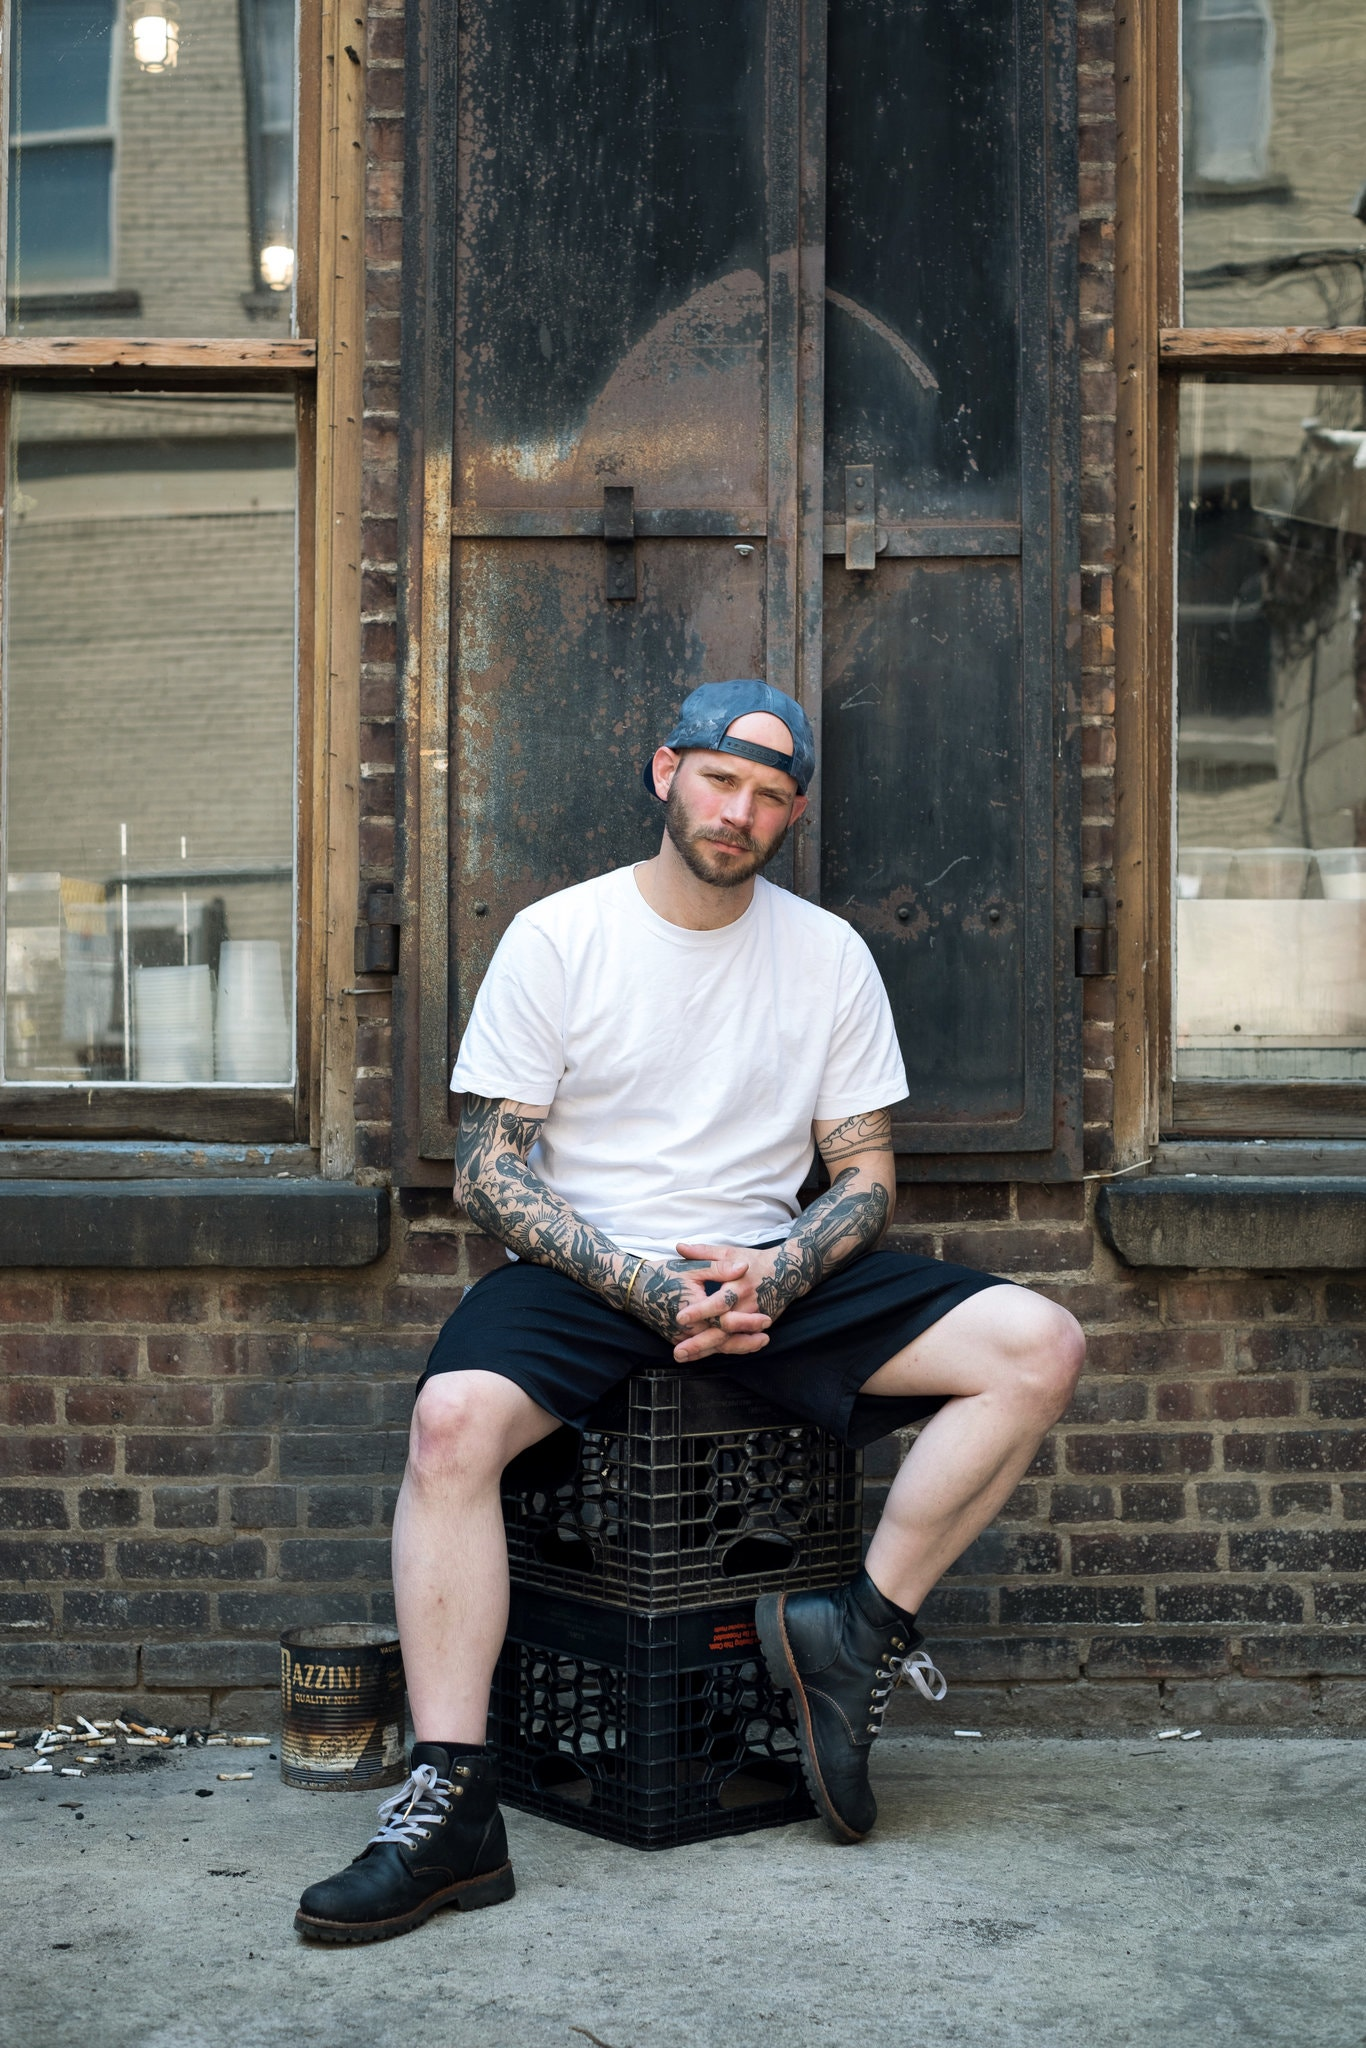 CT Turgeon, who worked at a two-Michelin-starred restaurant in Chicago before relocating to Kingston, opened Wilde Beeste with five of his friends.CreditRichard Beaven for The New York Times